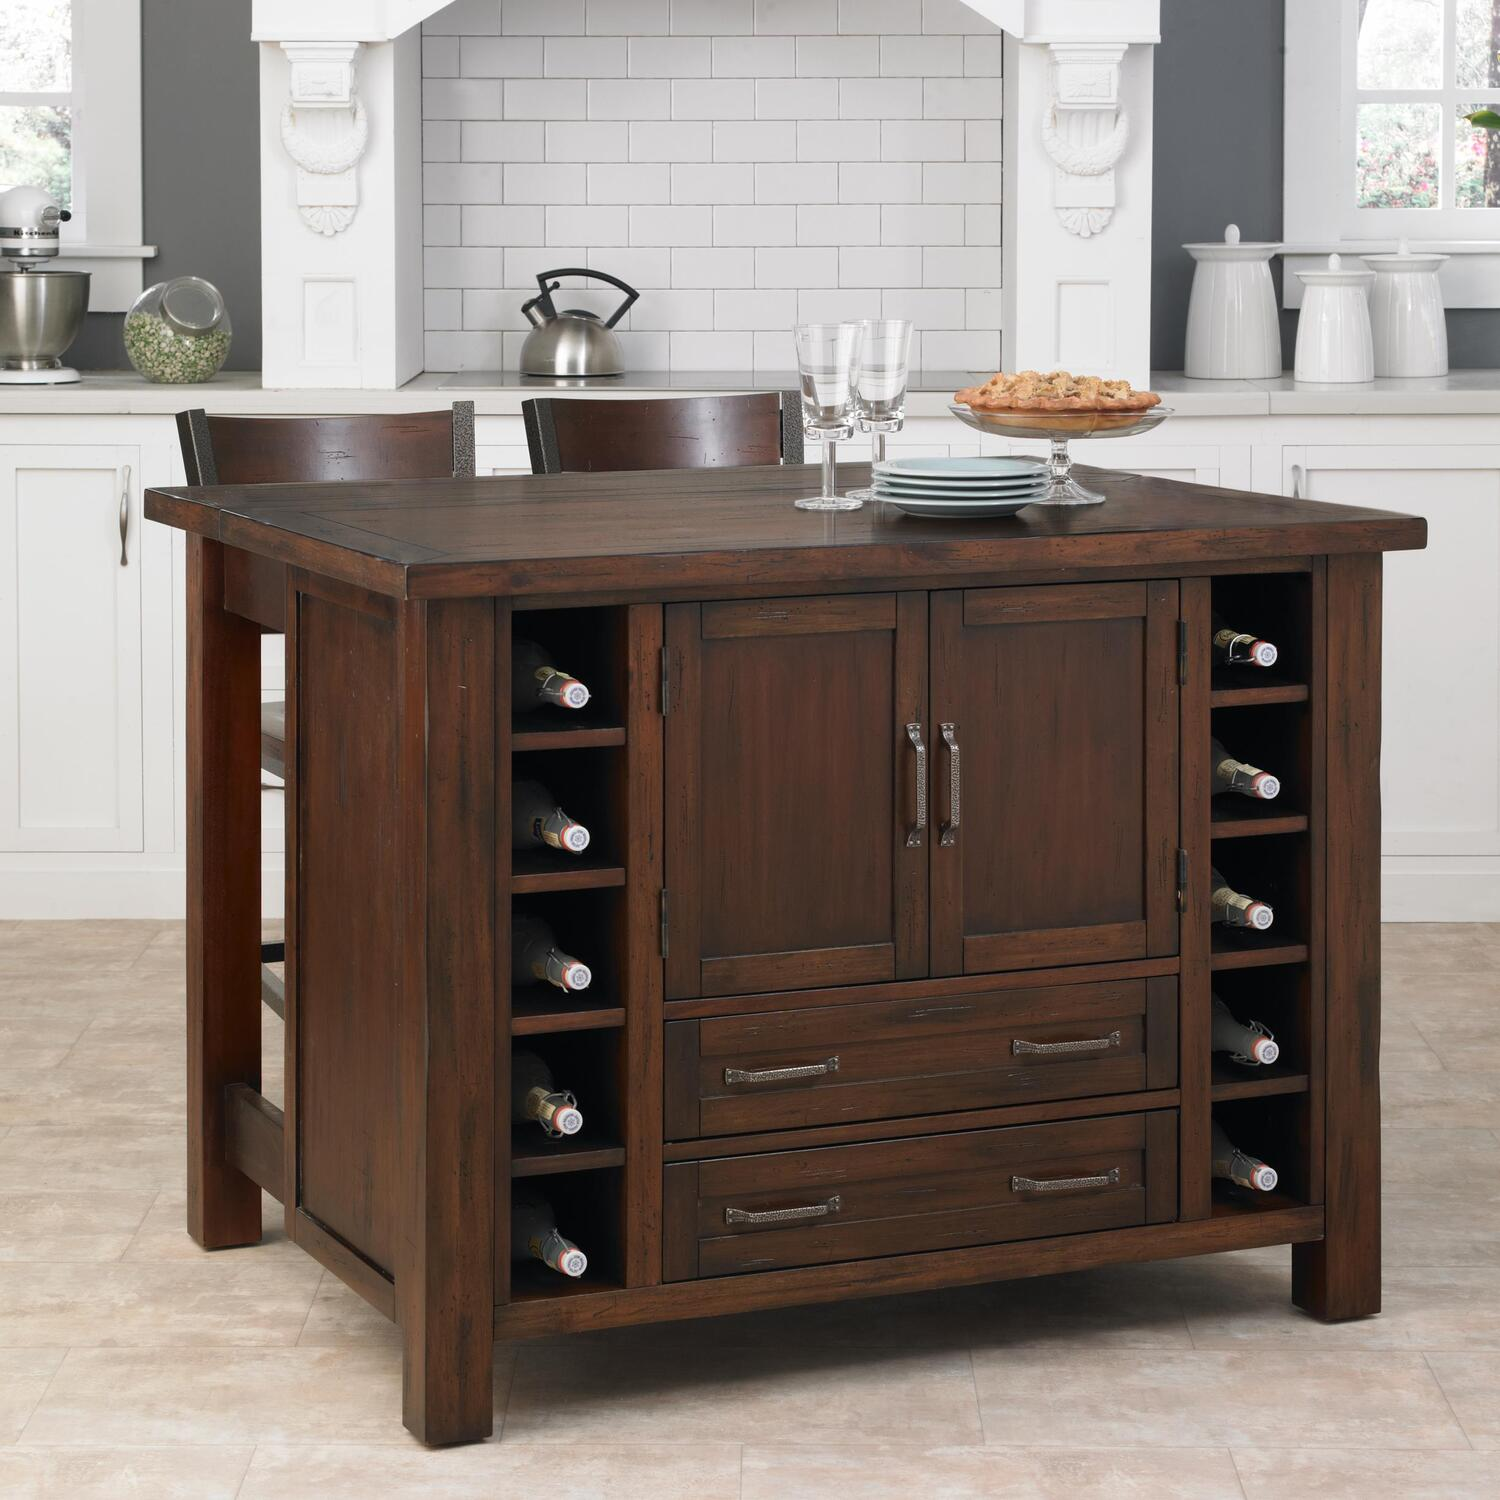 Home styles cabin creek kitchen island with breakfast bar for Bar stools for kitchen islands